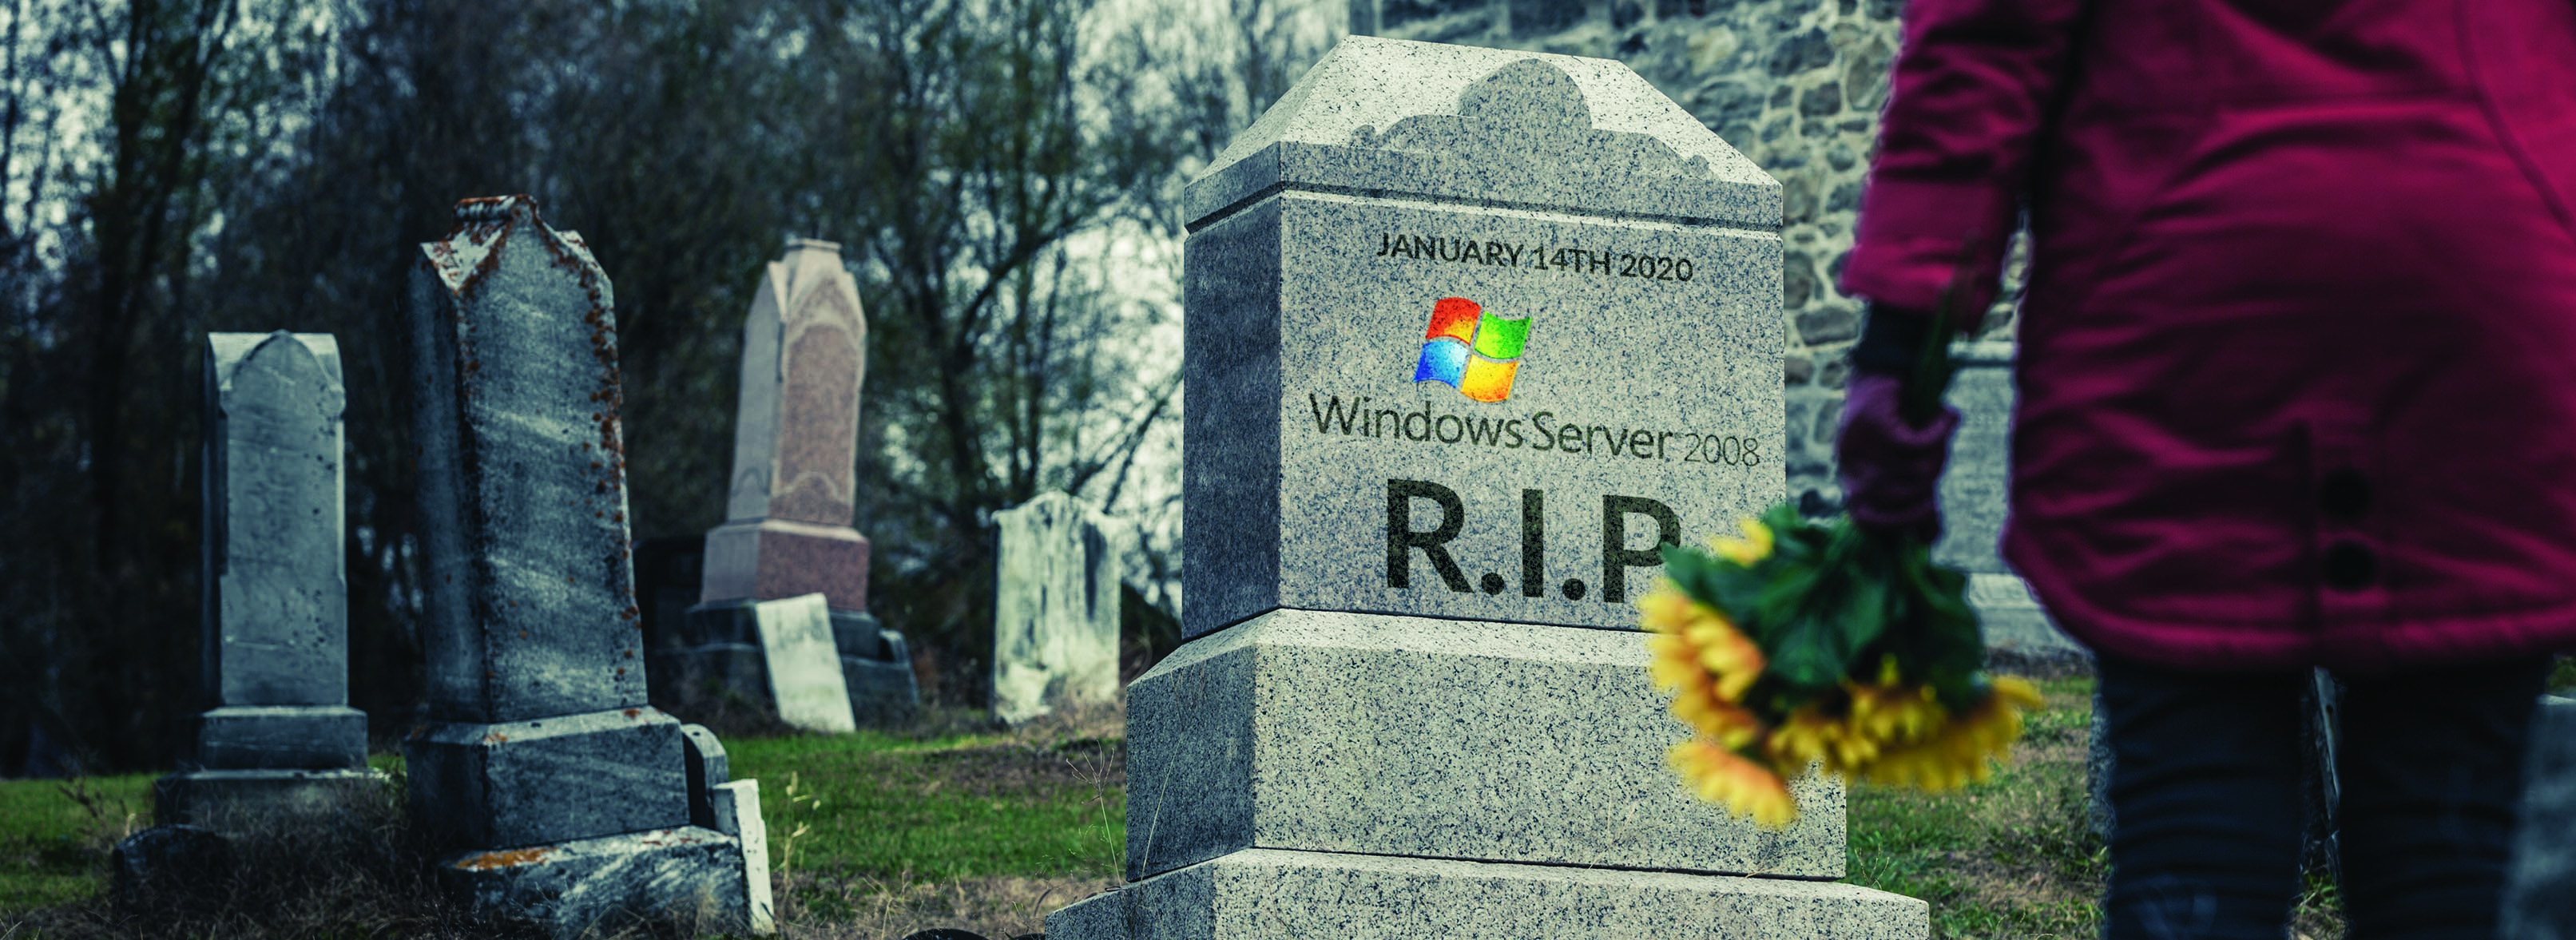 Windows 2008 End of Life Approaching